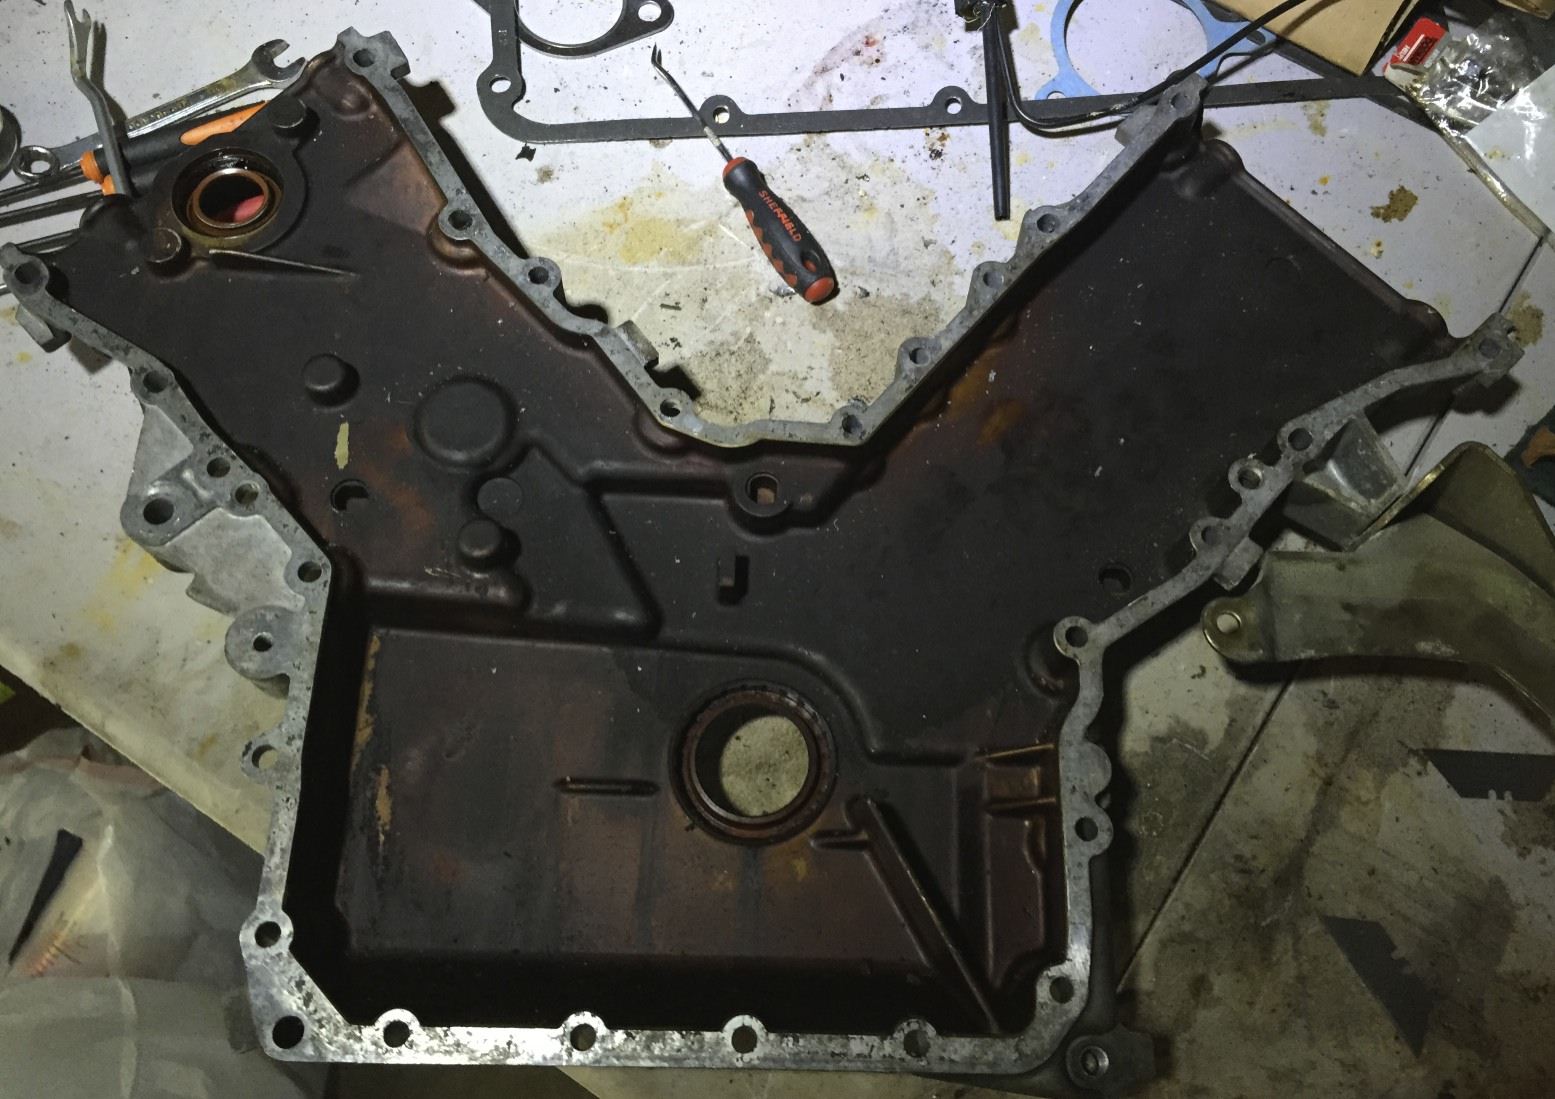 The timing cover after the gasket has been removed.